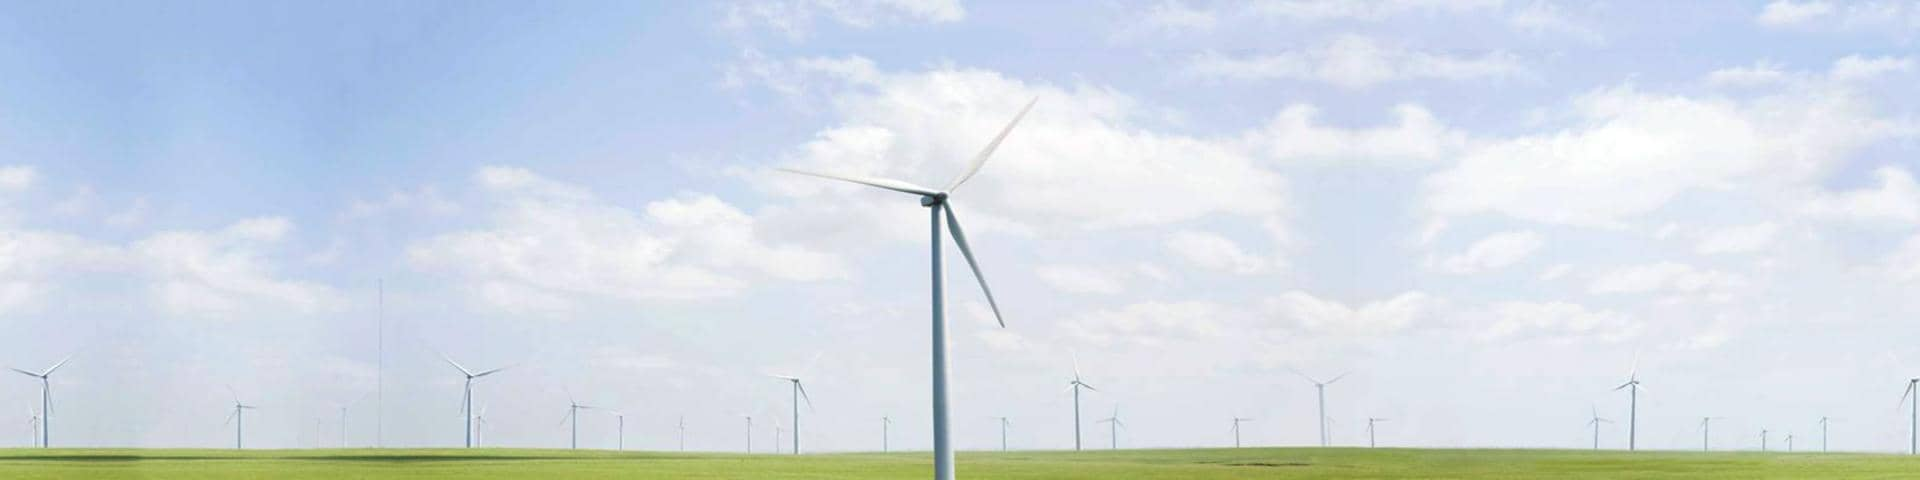 wind turbine green energy db schenker